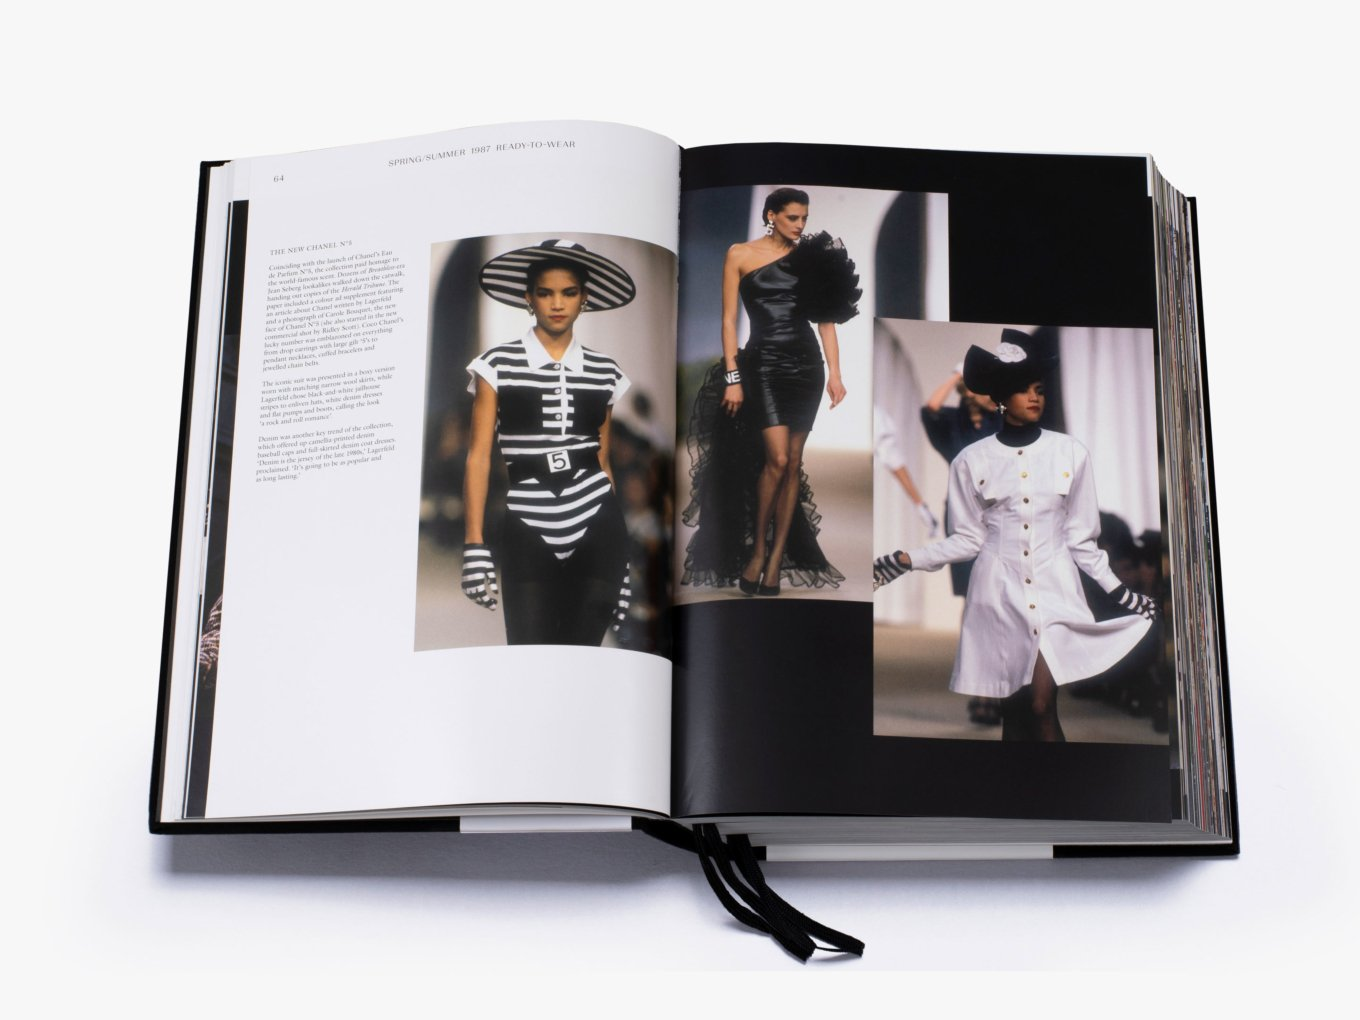 Alliance Distribution Services BOOK THECMPLETCOL Thames & Hudson | Chanel Catwalk: The Complete Collections